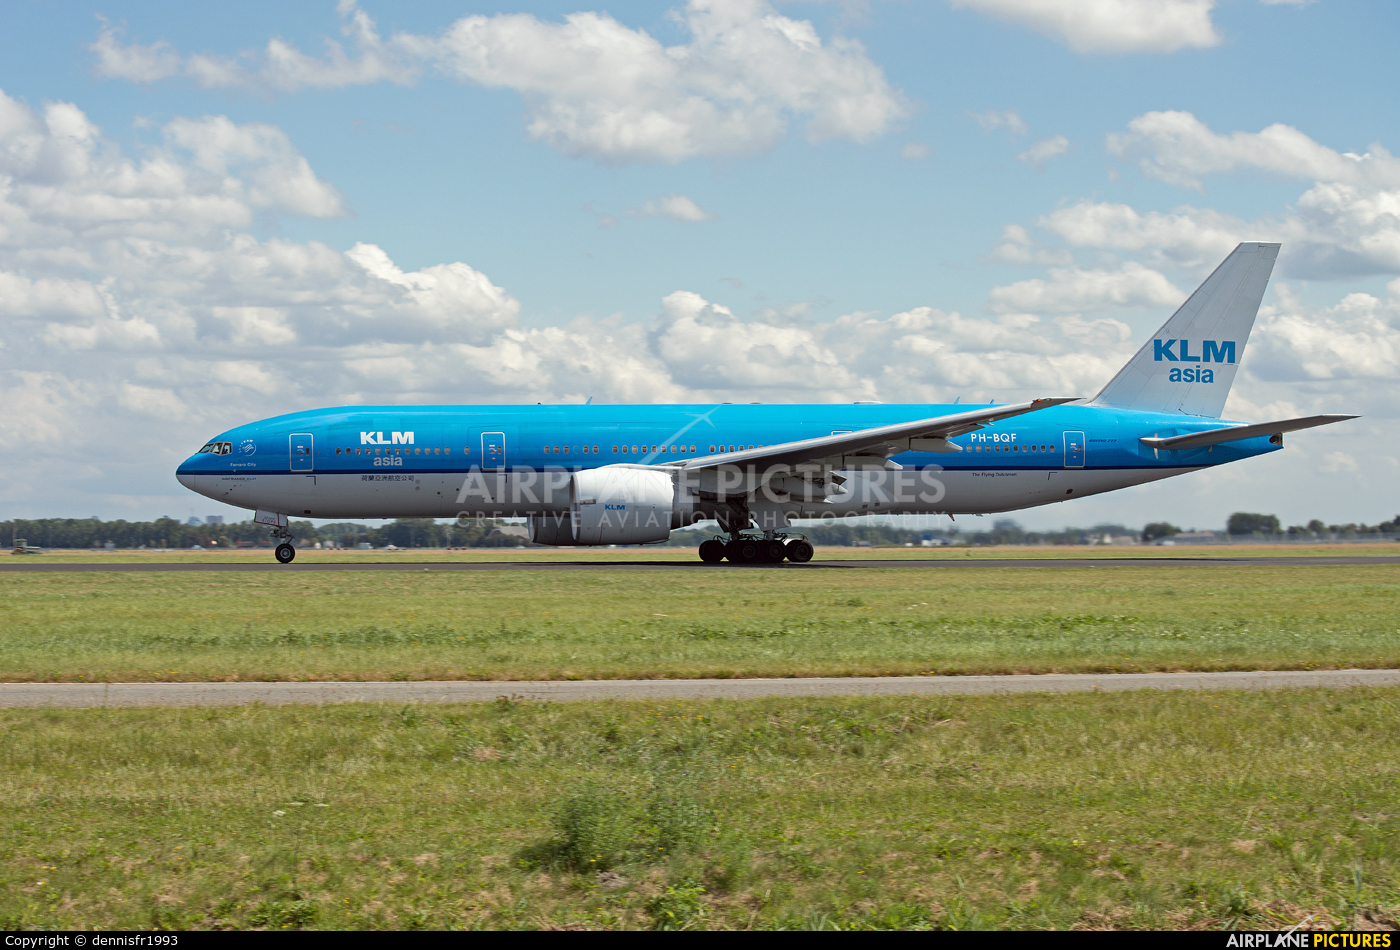 KLM Asia PH-BQF aircraft at Amsterdam - Schiphol